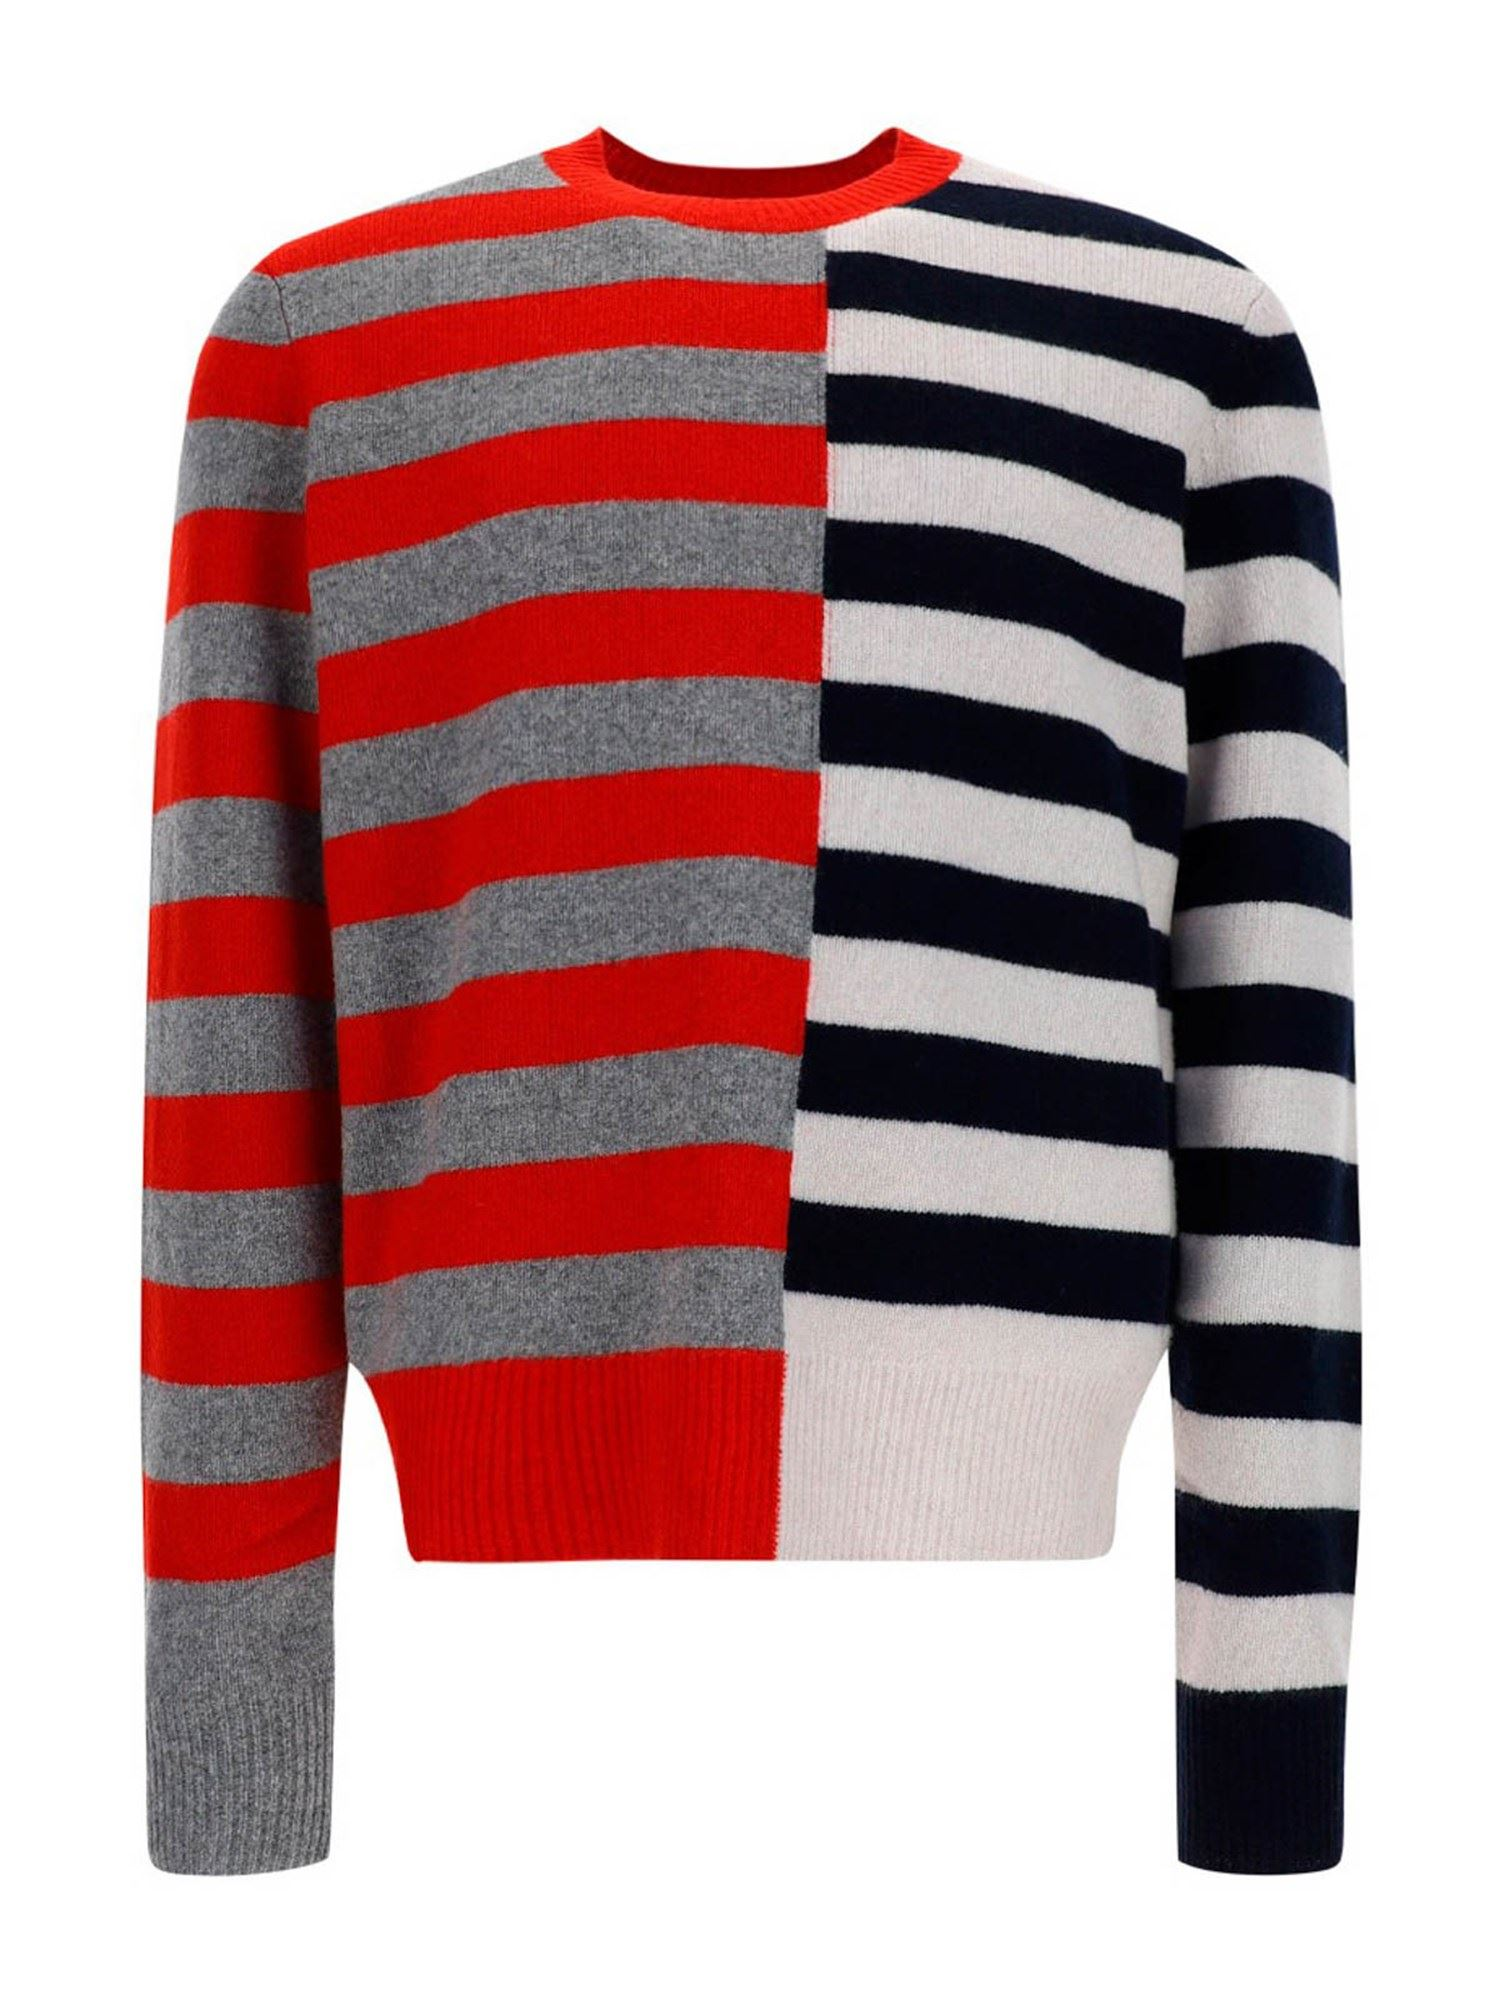 Helmut Lang Wools STRIPED SWEATER